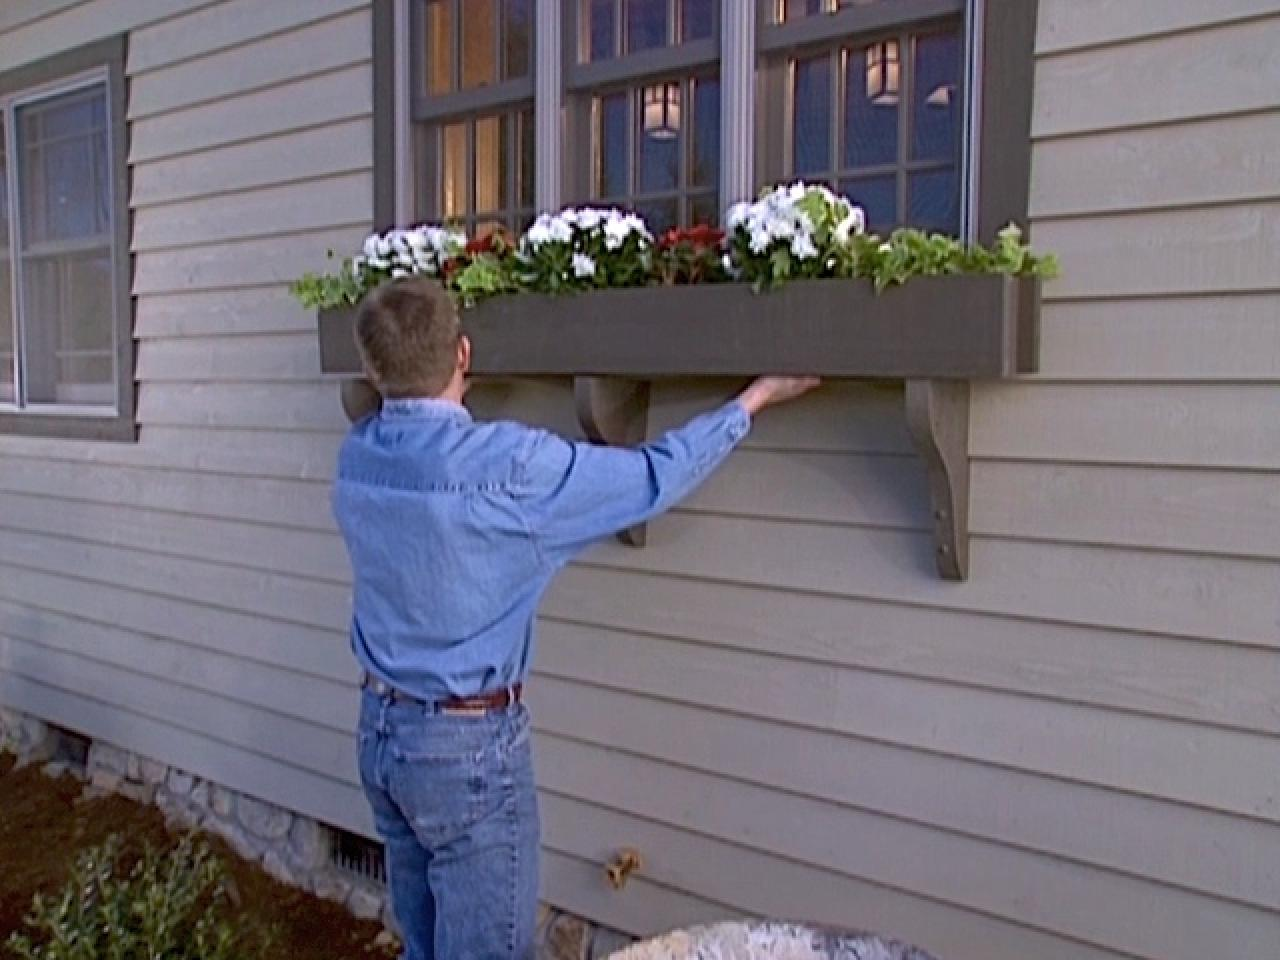 How To Build A Window Box Planter How Tos Diy